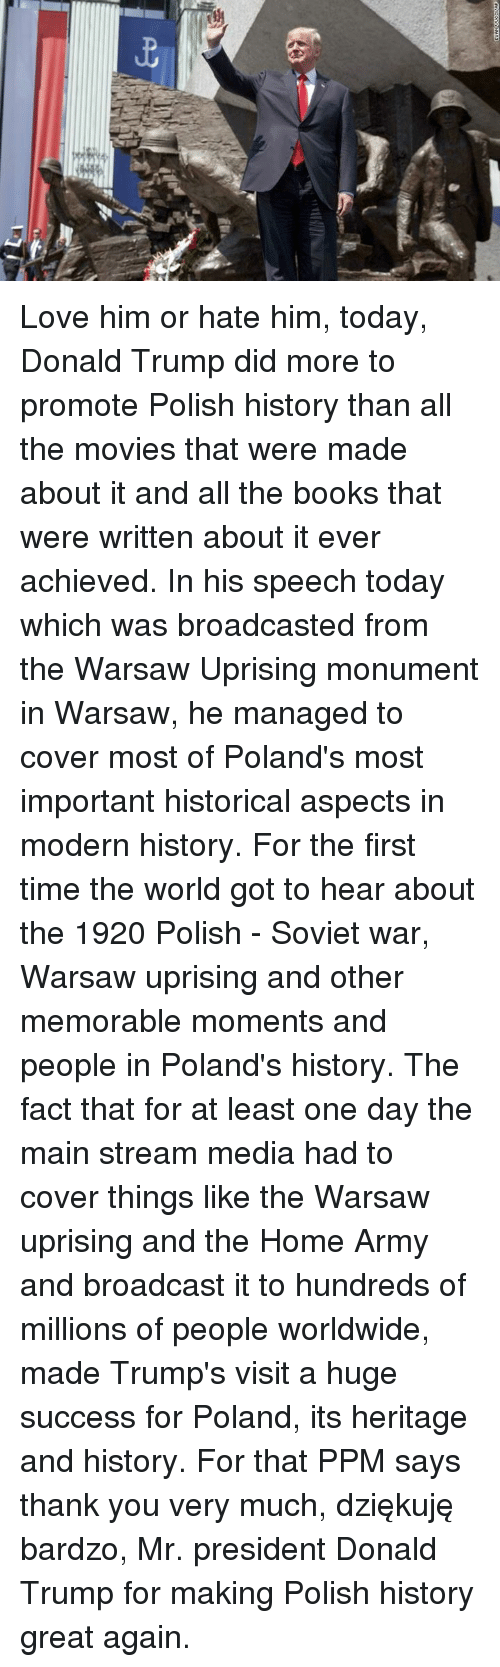 polishing: Love him or hate him, today, Donald Trump did more to promote Polish history than all the movies that were made about it and all the books that were written about it ever achieved.   In his speech today which was broadcasted from the Warsaw Uprising monument in Warsaw, he managed to cover most of Poland's most important historical aspects in modern history.   For the first time the world got to hear about the 1920 Polish - Soviet war, Warsaw uprising and other memorable moments and people in Poland's history.   The fact that for at least one day the main stream media had to cover things like the Warsaw uprising and the Home Army and broadcast it to hundreds of millions of people worldwide, made Trump's visit a huge success for Poland, its heritage and history.   For that PPM says thank you very much, dziękuję bardzo, Mr. president Donald Trump for making Polish history great again.